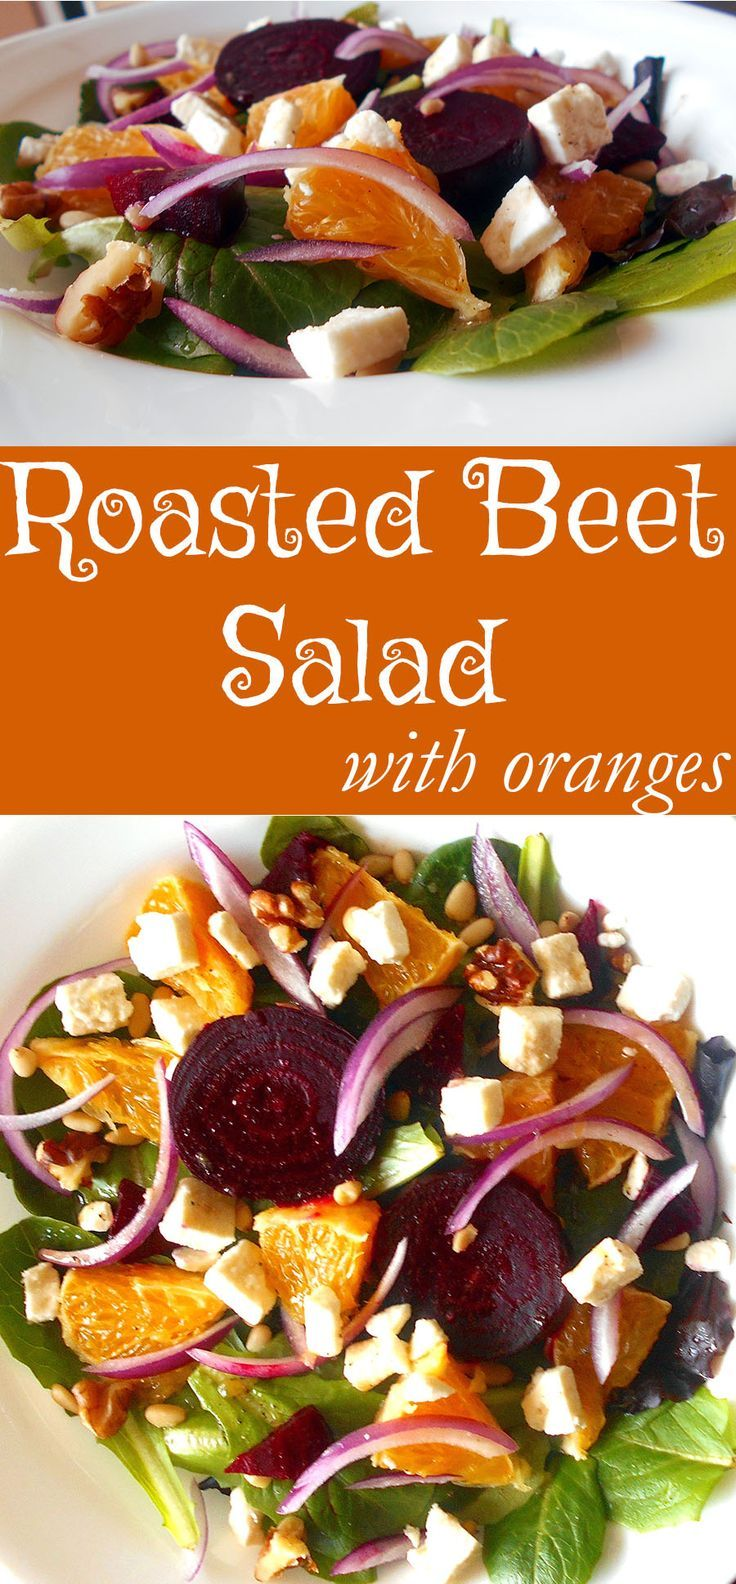 Roasted beet salad made with oranges, red onions and feta cheese.  Topped with a simple vinaigrette for a quick and healthy lunch